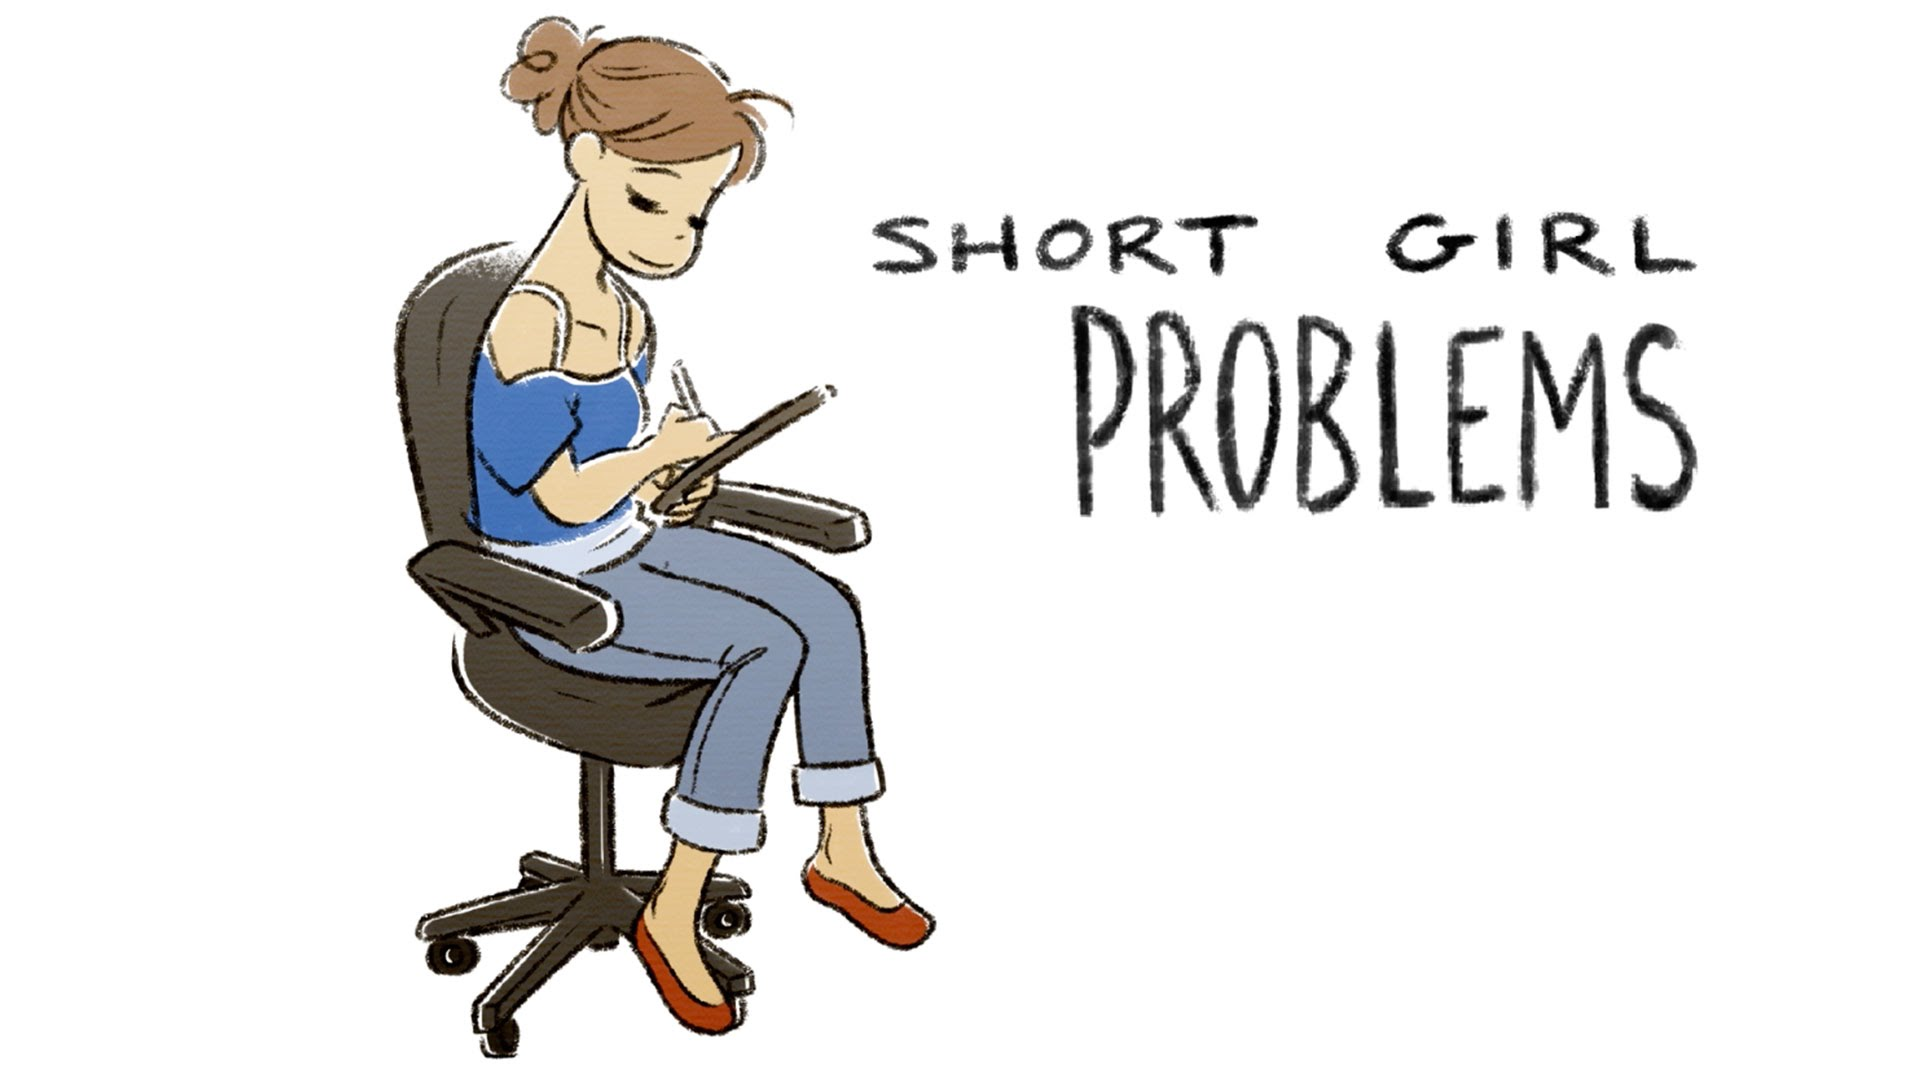 Short clipart short lady. Girl problems youtube